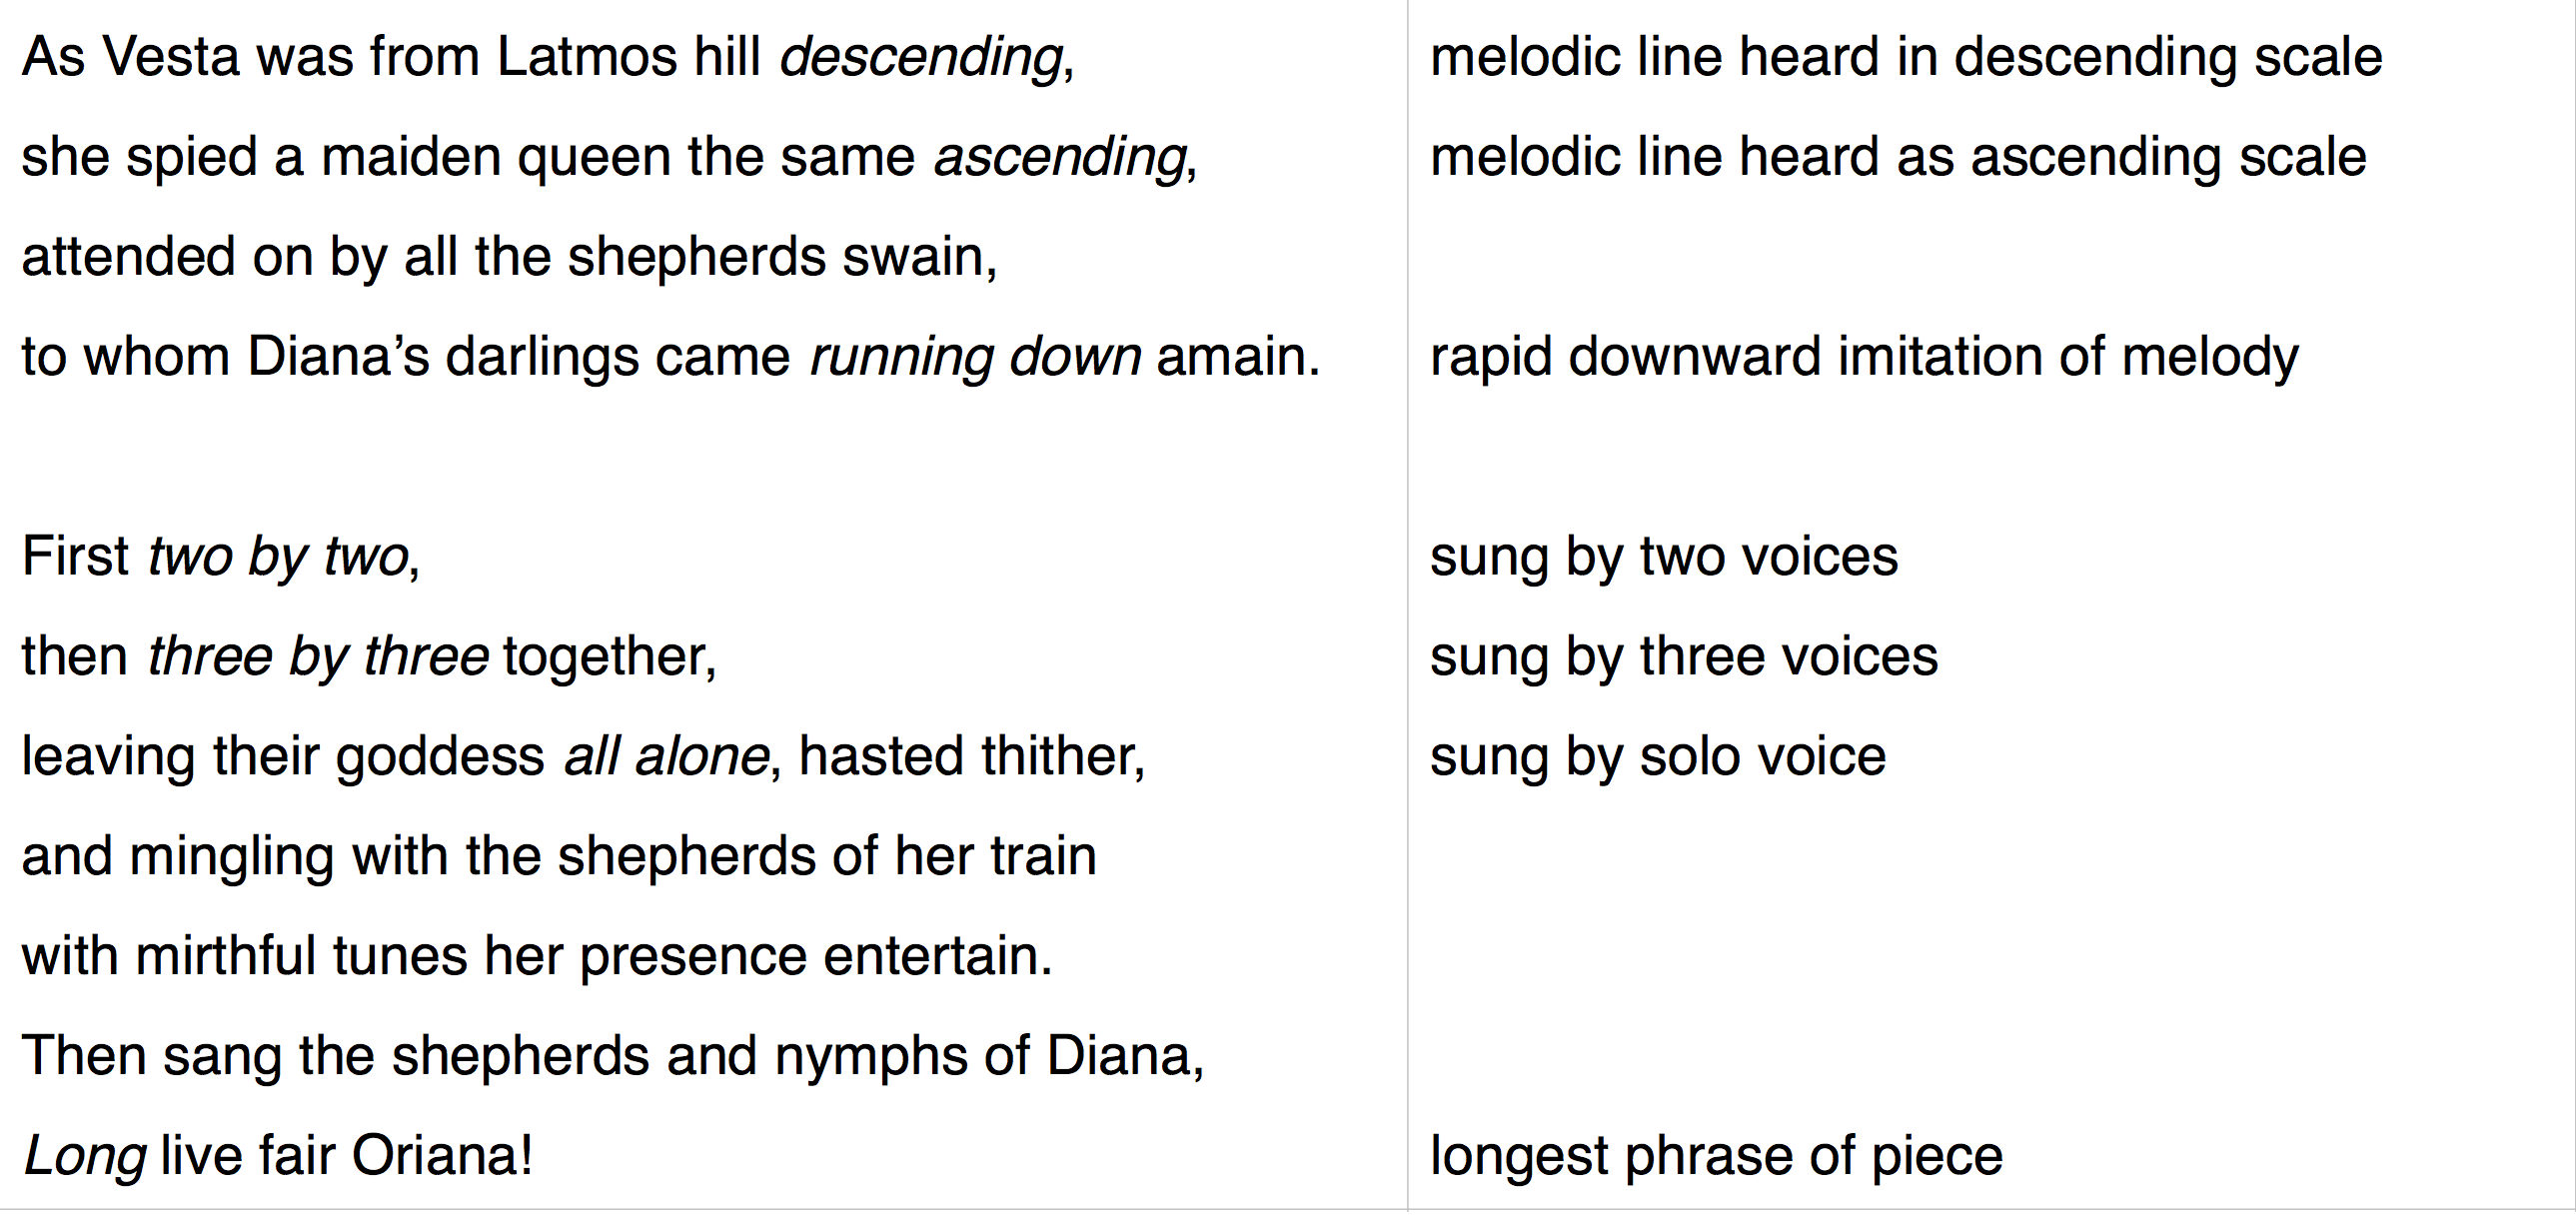 Madrigals And Word Painting Music Appreciation Descending meaning in english, descending definitions, synonyms of descending, definition of descending, descending translate in english, primary meanings of descending, full definitions. ram pages